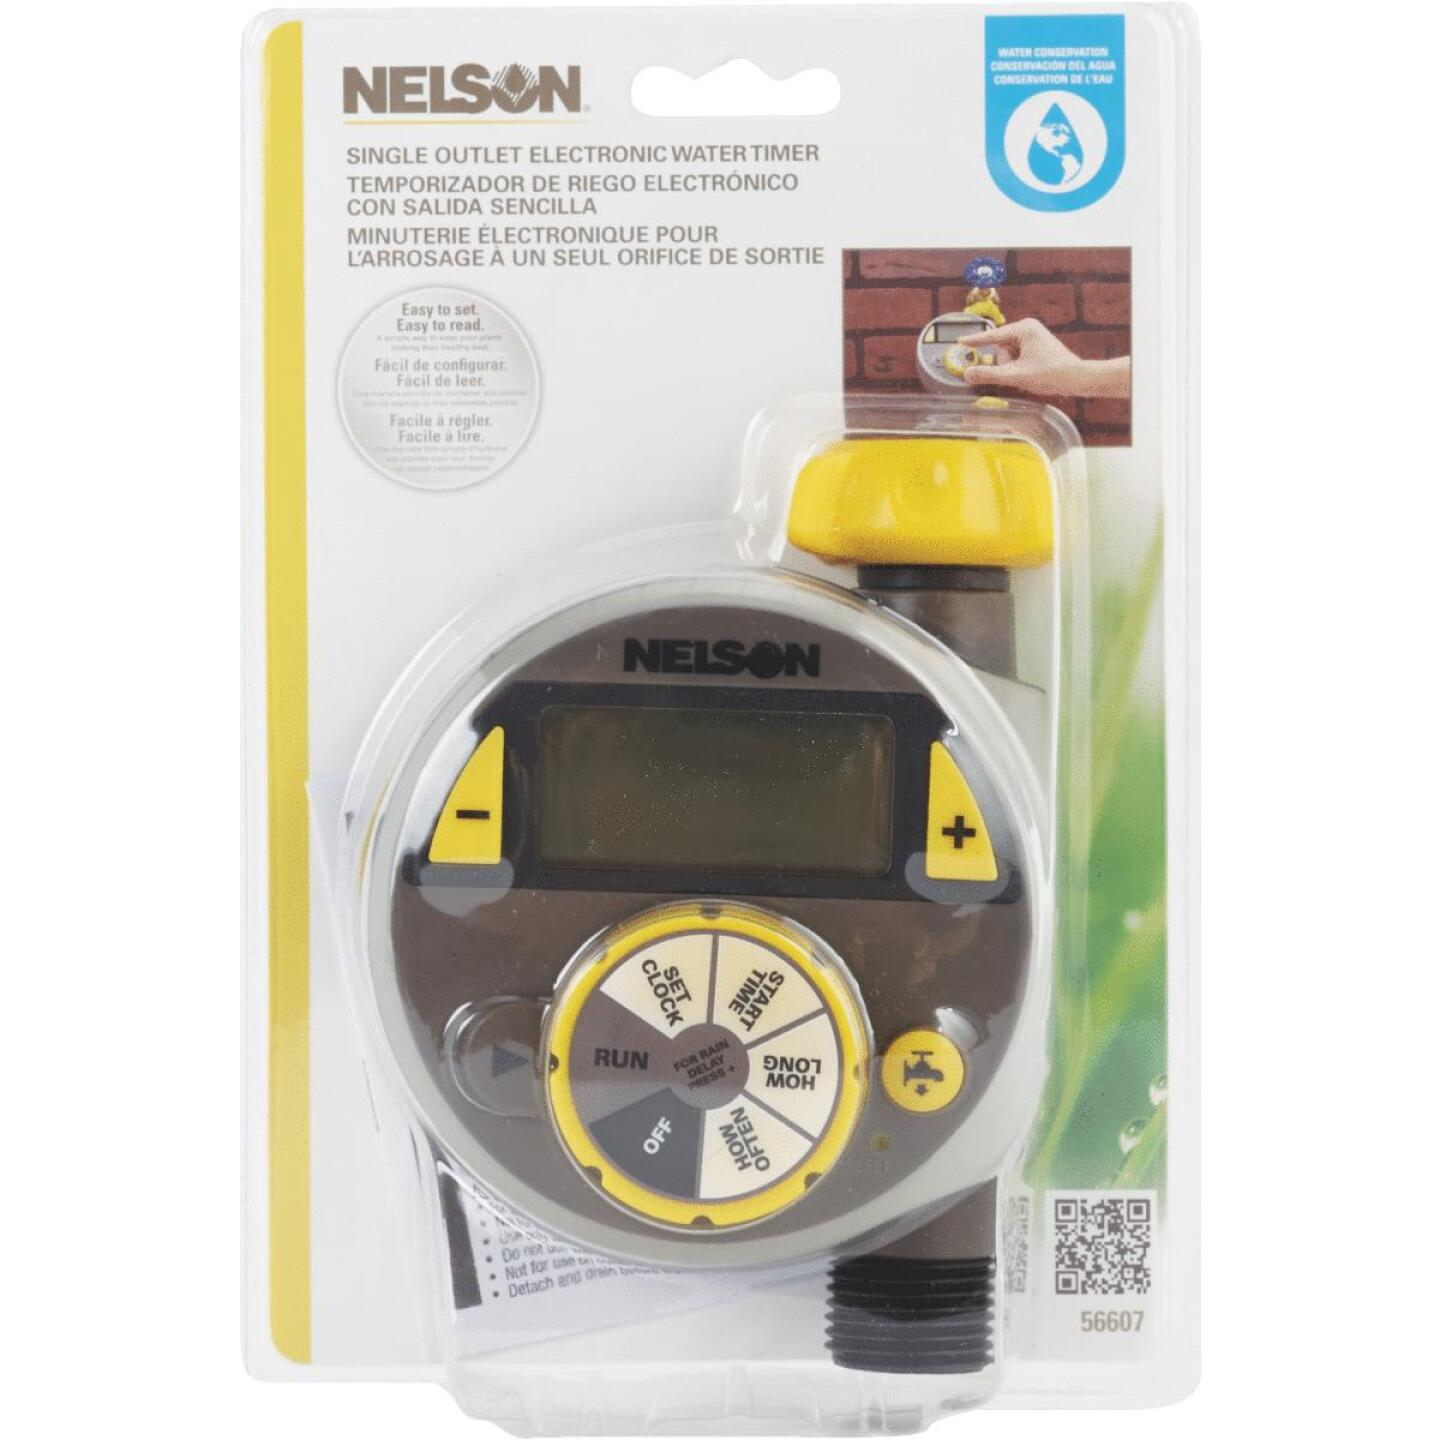 Nelson Electronic 1-Zone Water Timer Image 2